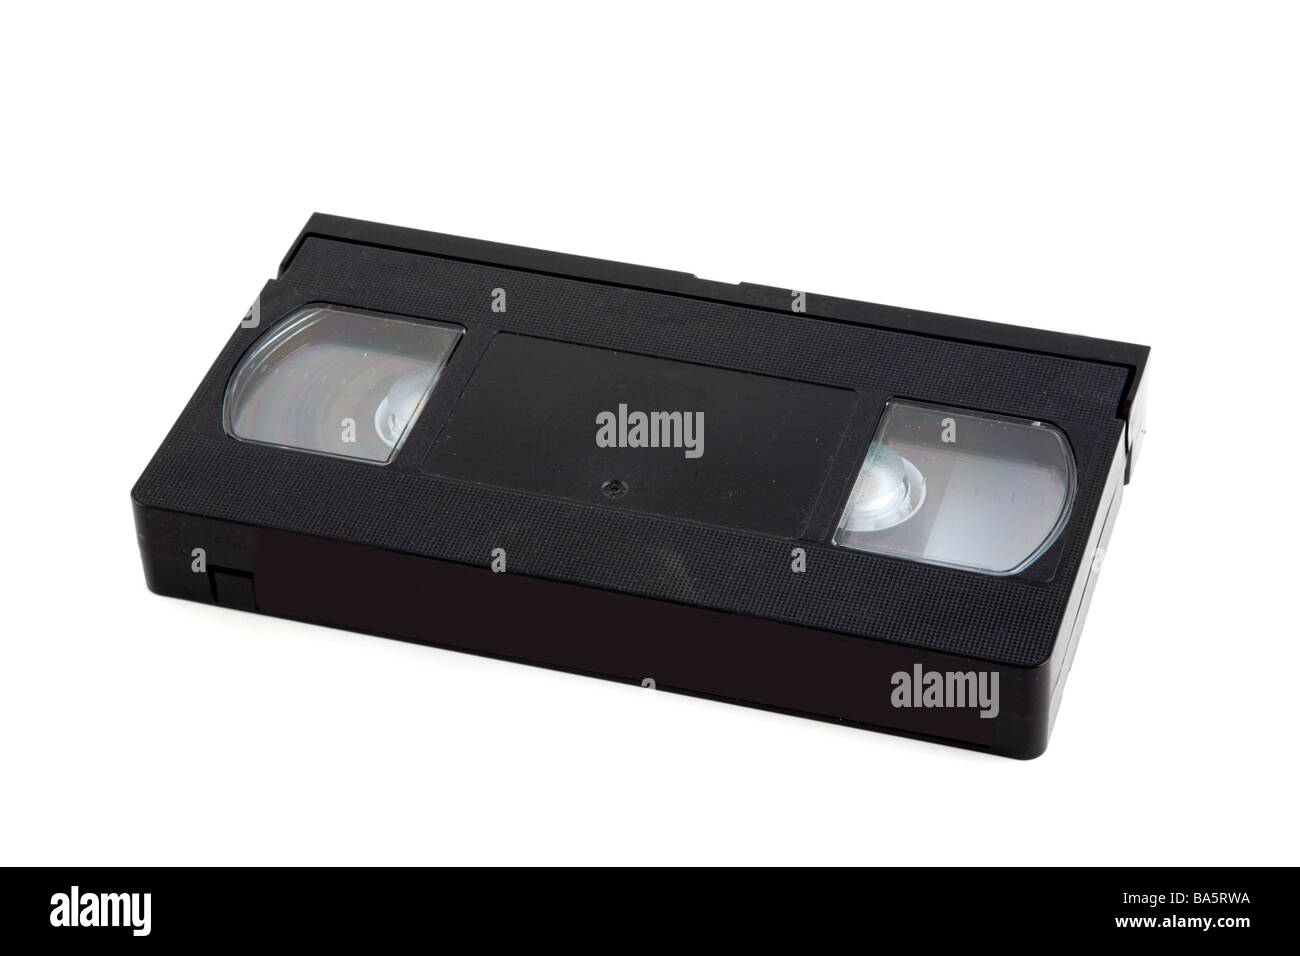 A VHS video cassette with logos trademarks removed - Stock Image